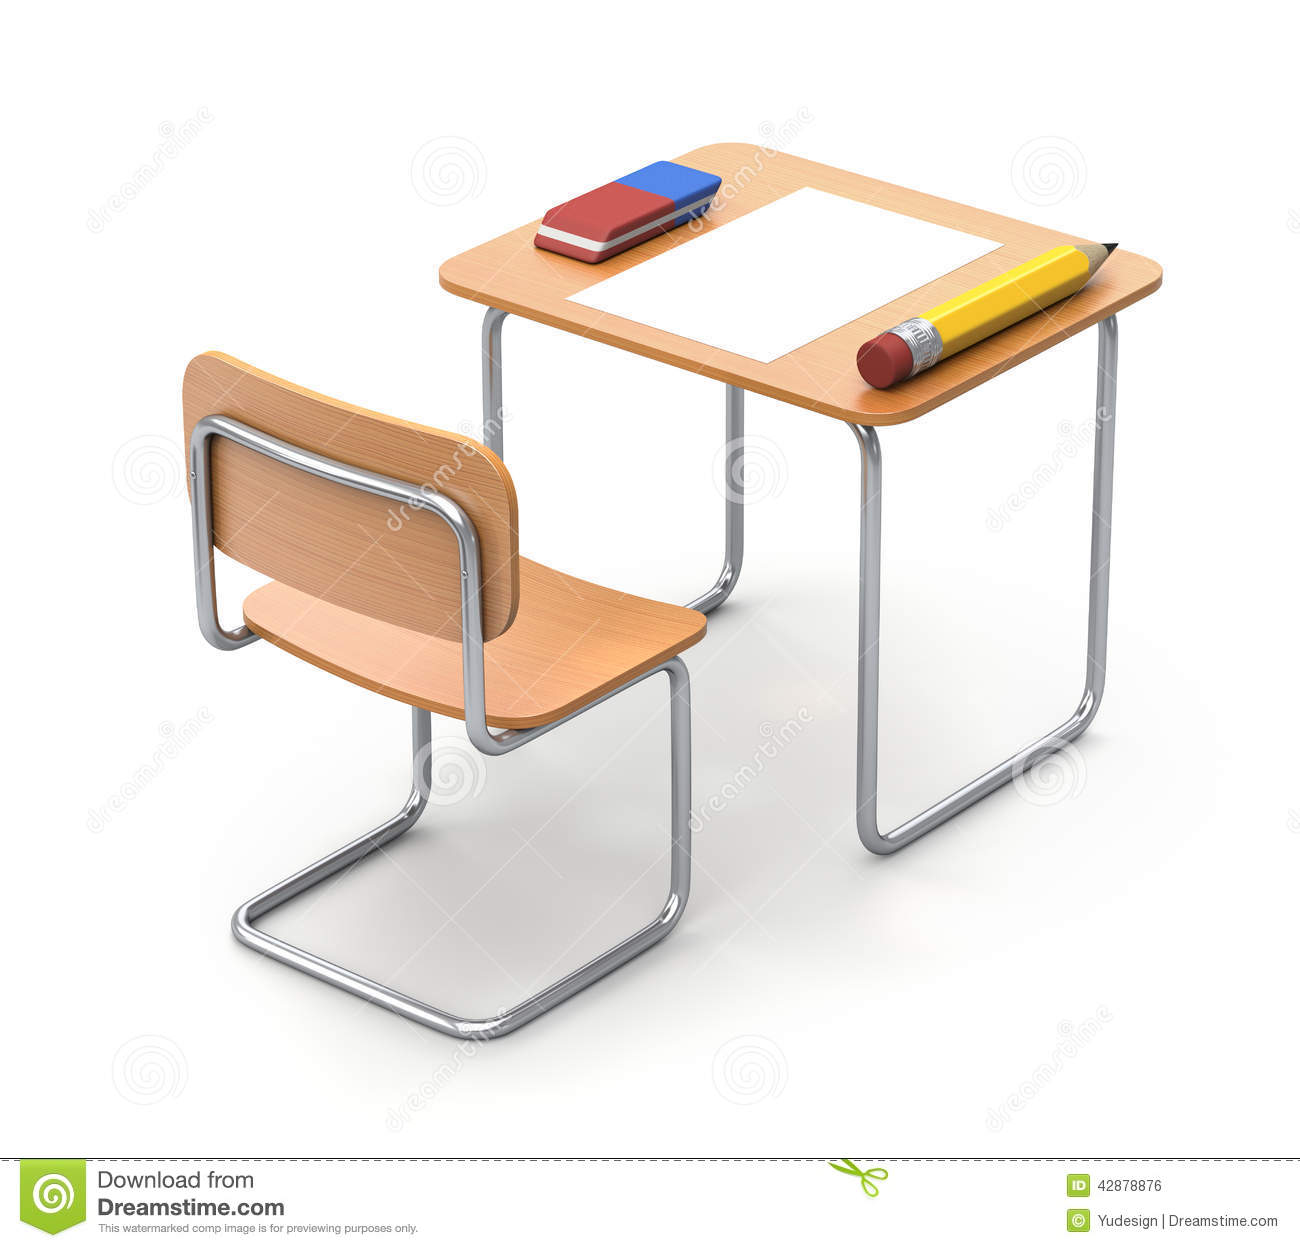 bureau d 39 cole avec le crayon et la gomme illustration stock image 42878876. Black Bedroom Furniture Sets. Home Design Ideas